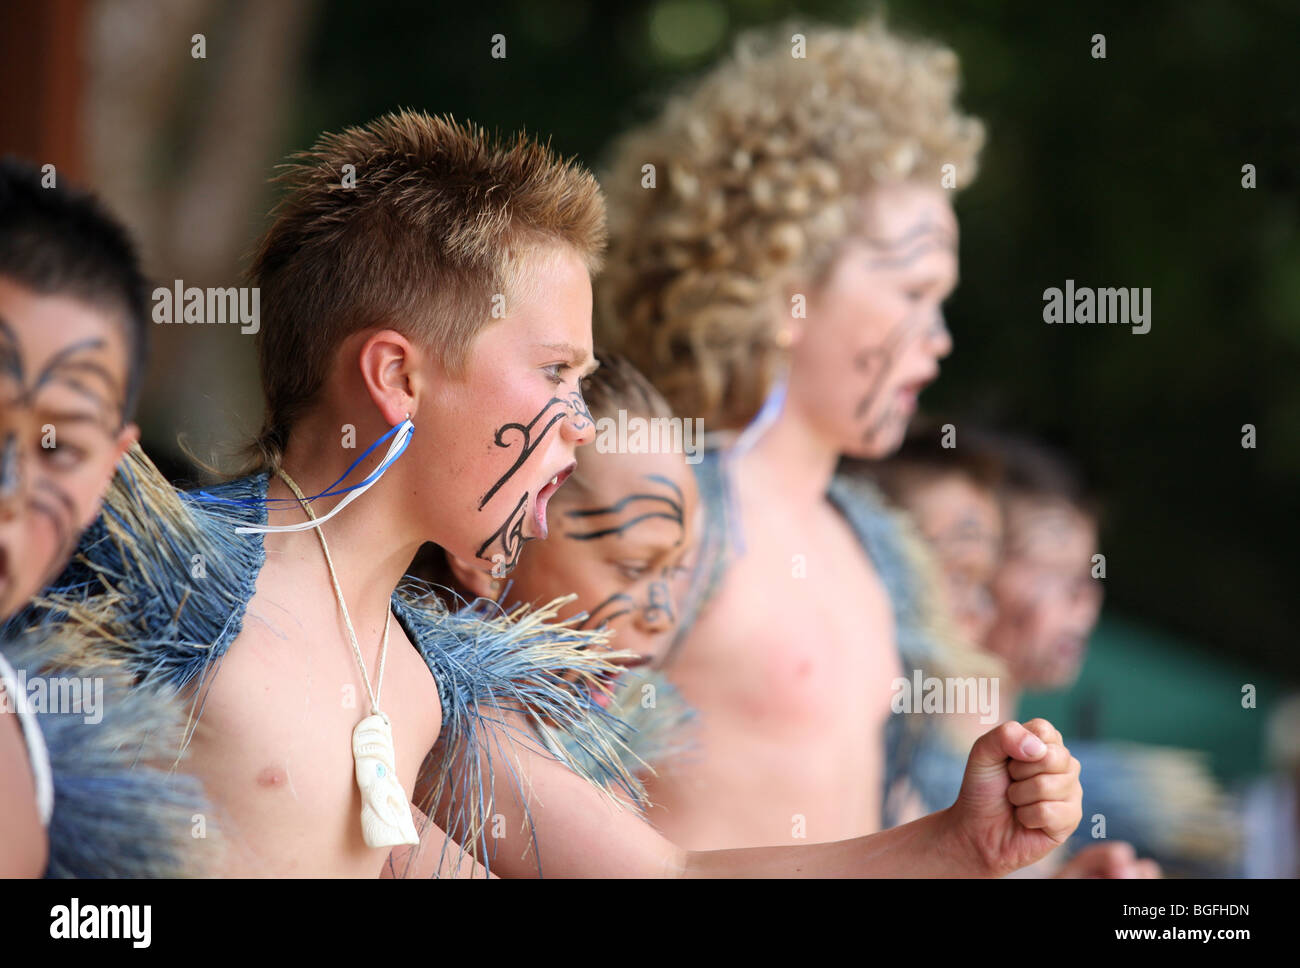 Male members of a Kapa Haka Roopu dancing at Waitangi Day celebrations on the Waitangi Treaty Grounds, Waitangi, New Zealand. Stock Photo